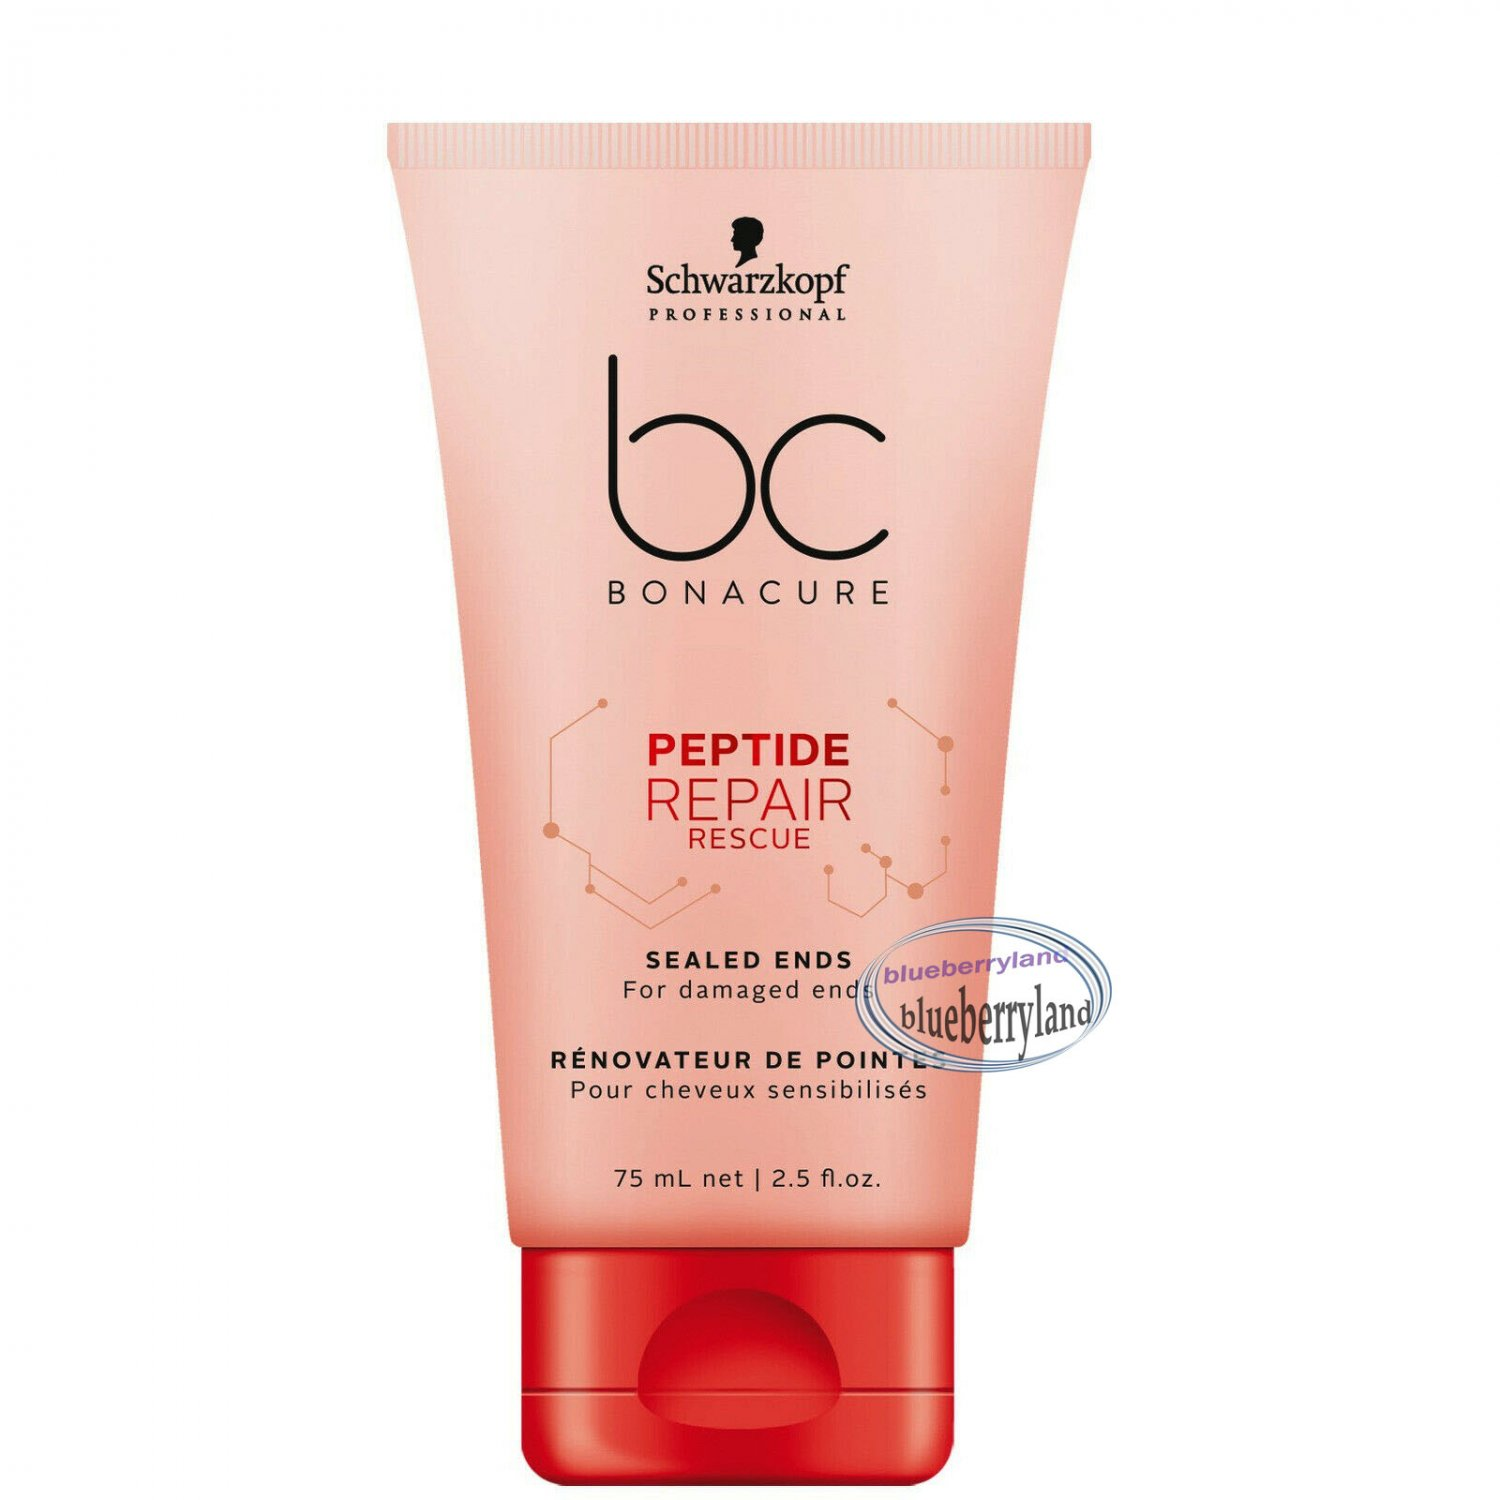 Schwarzkopf bc Bonacure Peptide Repair Rescue Sealed Ends 75ml Hair Styling care